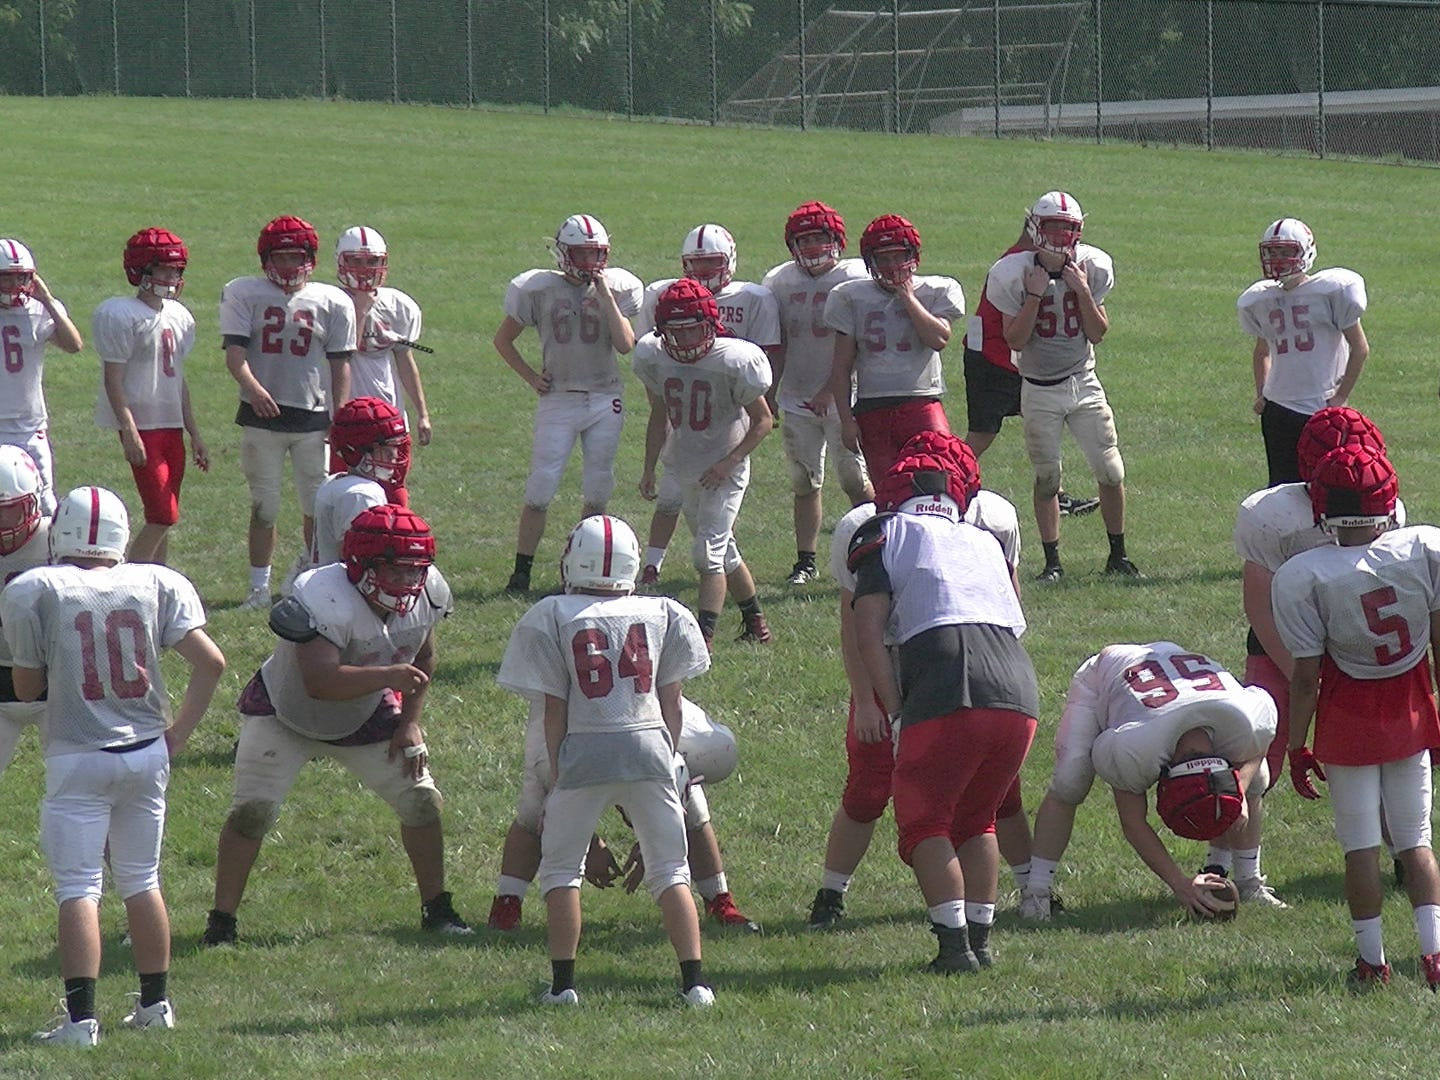 The Susquehannock football team practices kicking field goals during practice Monday.